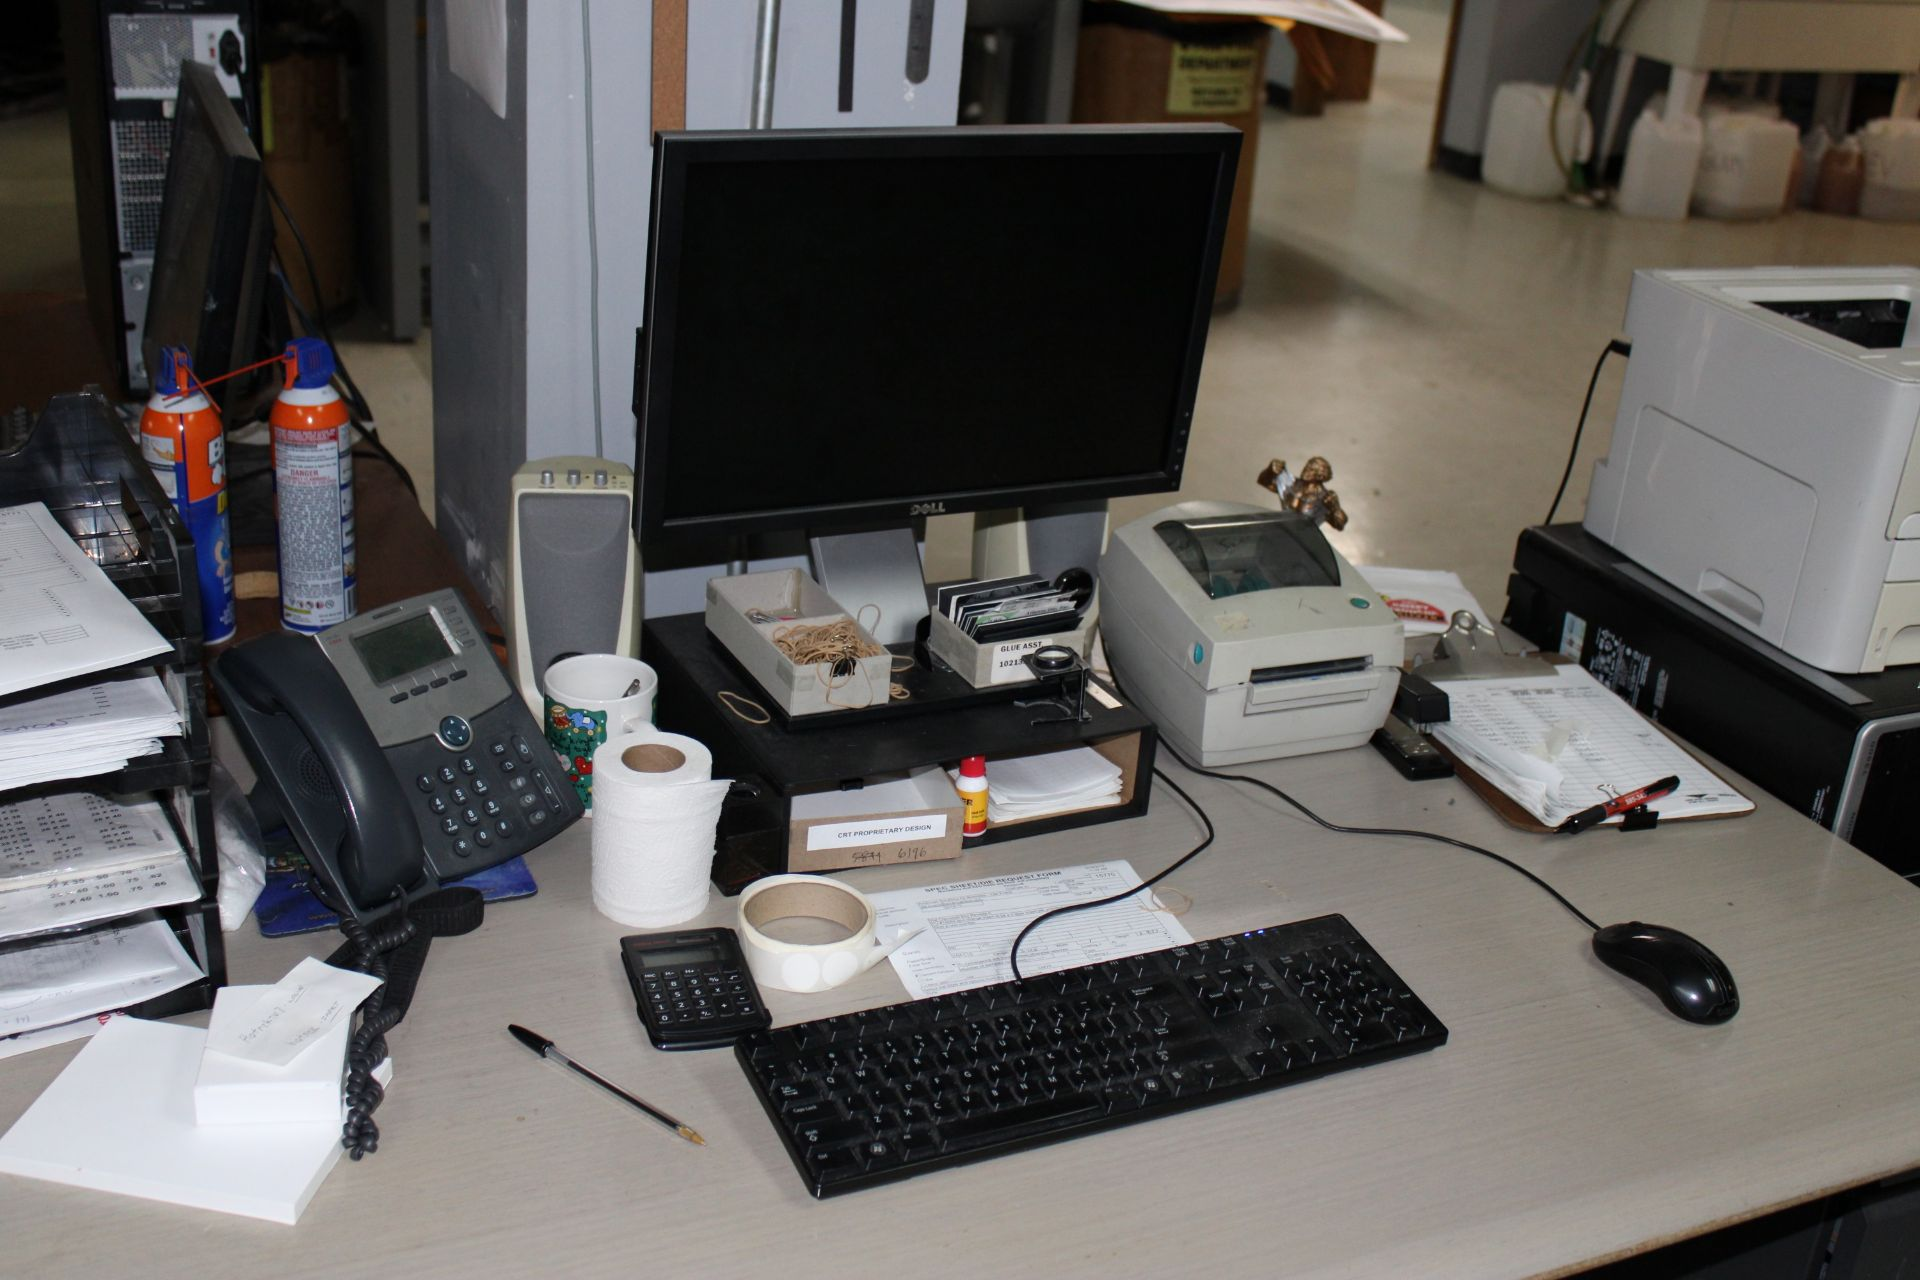 Lot 21 - 2007 ZUND Model M-800 Flatbed Cutter w/ Dell Precision T3500 Computer/Monitor/ Keyboard/Mouse w/